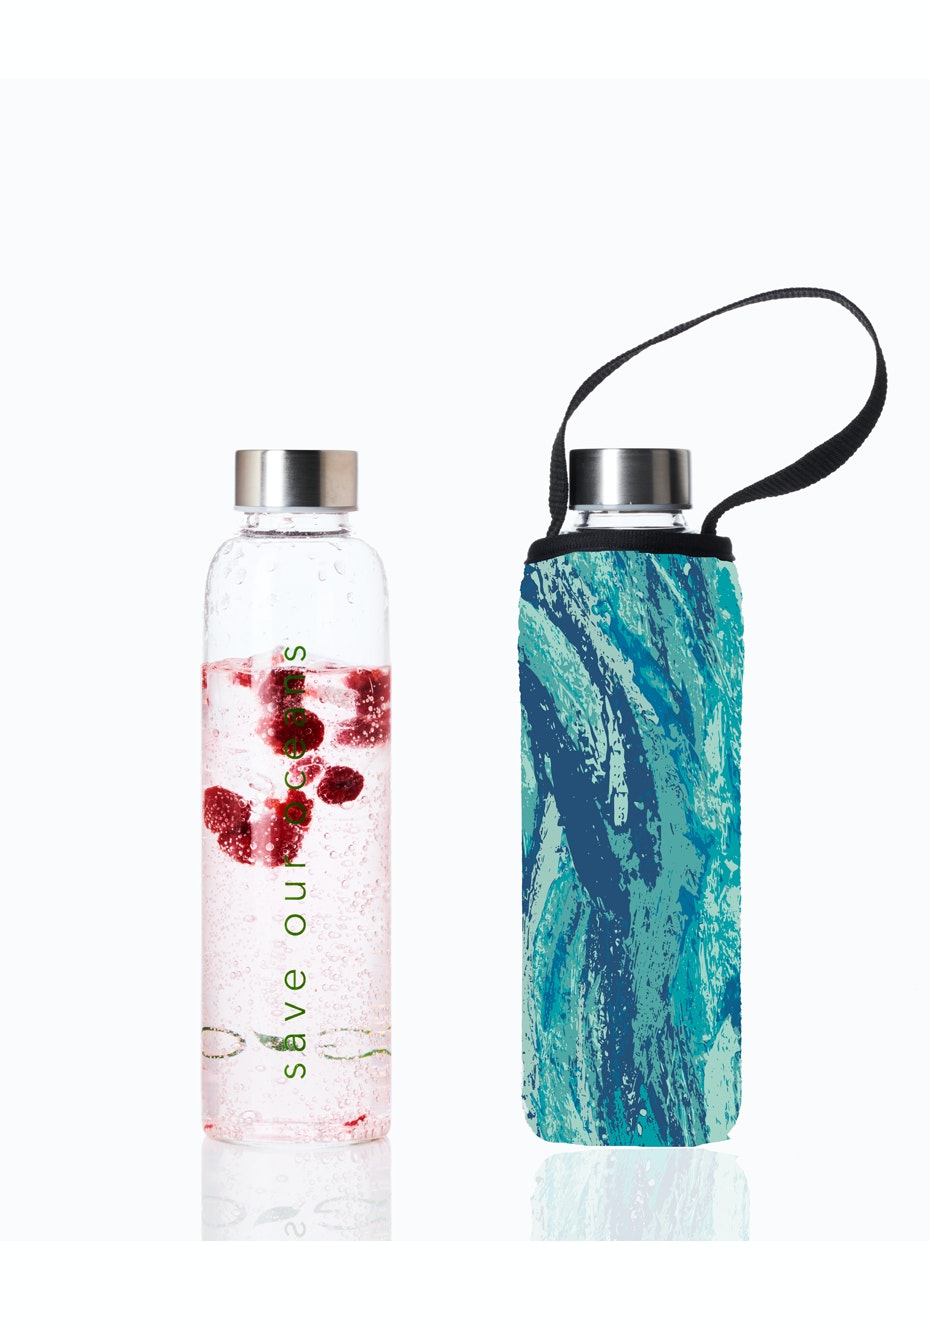 BBBYO - Glass Is Greener Bottle 570 ml + Carry Cover (Gush Print) - 570 ml